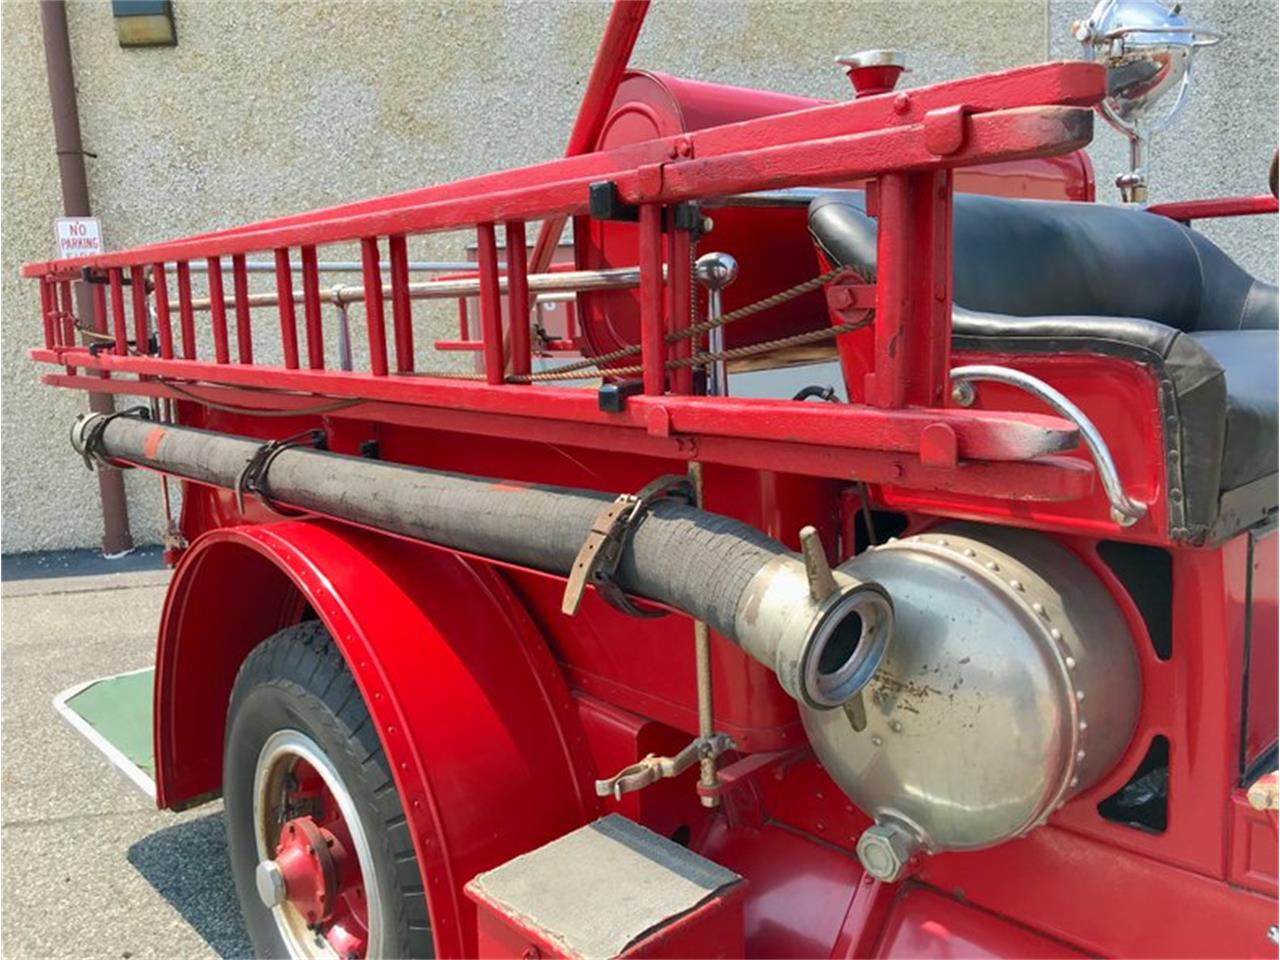 1920 Ahrens-Fox Fire Truck for sale in Morgantown, PA – photo 18